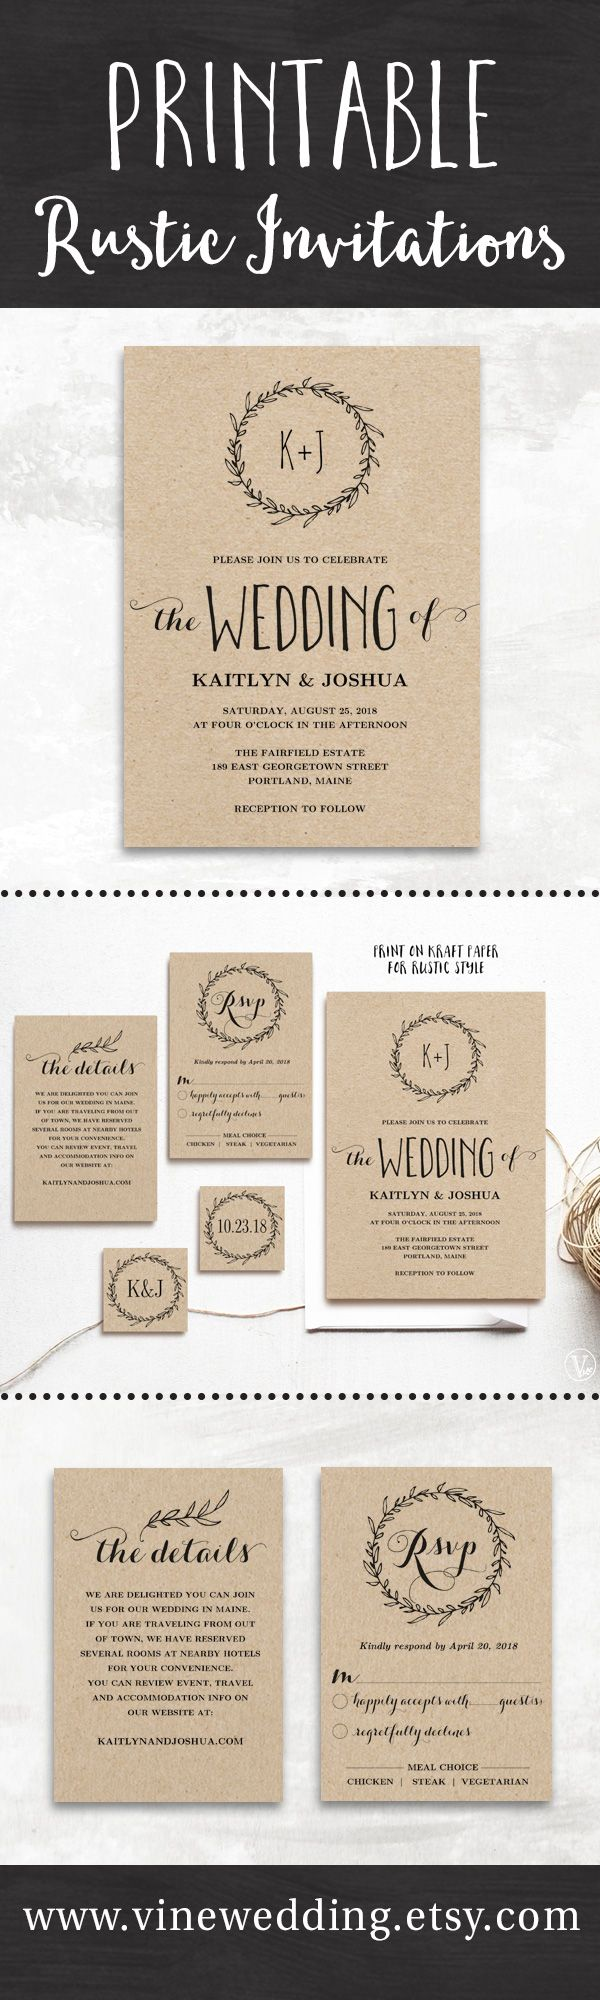 Beautiful rustic wedding invitations. Editable instant download templates you can print as many as you need.  #wedding #invitations